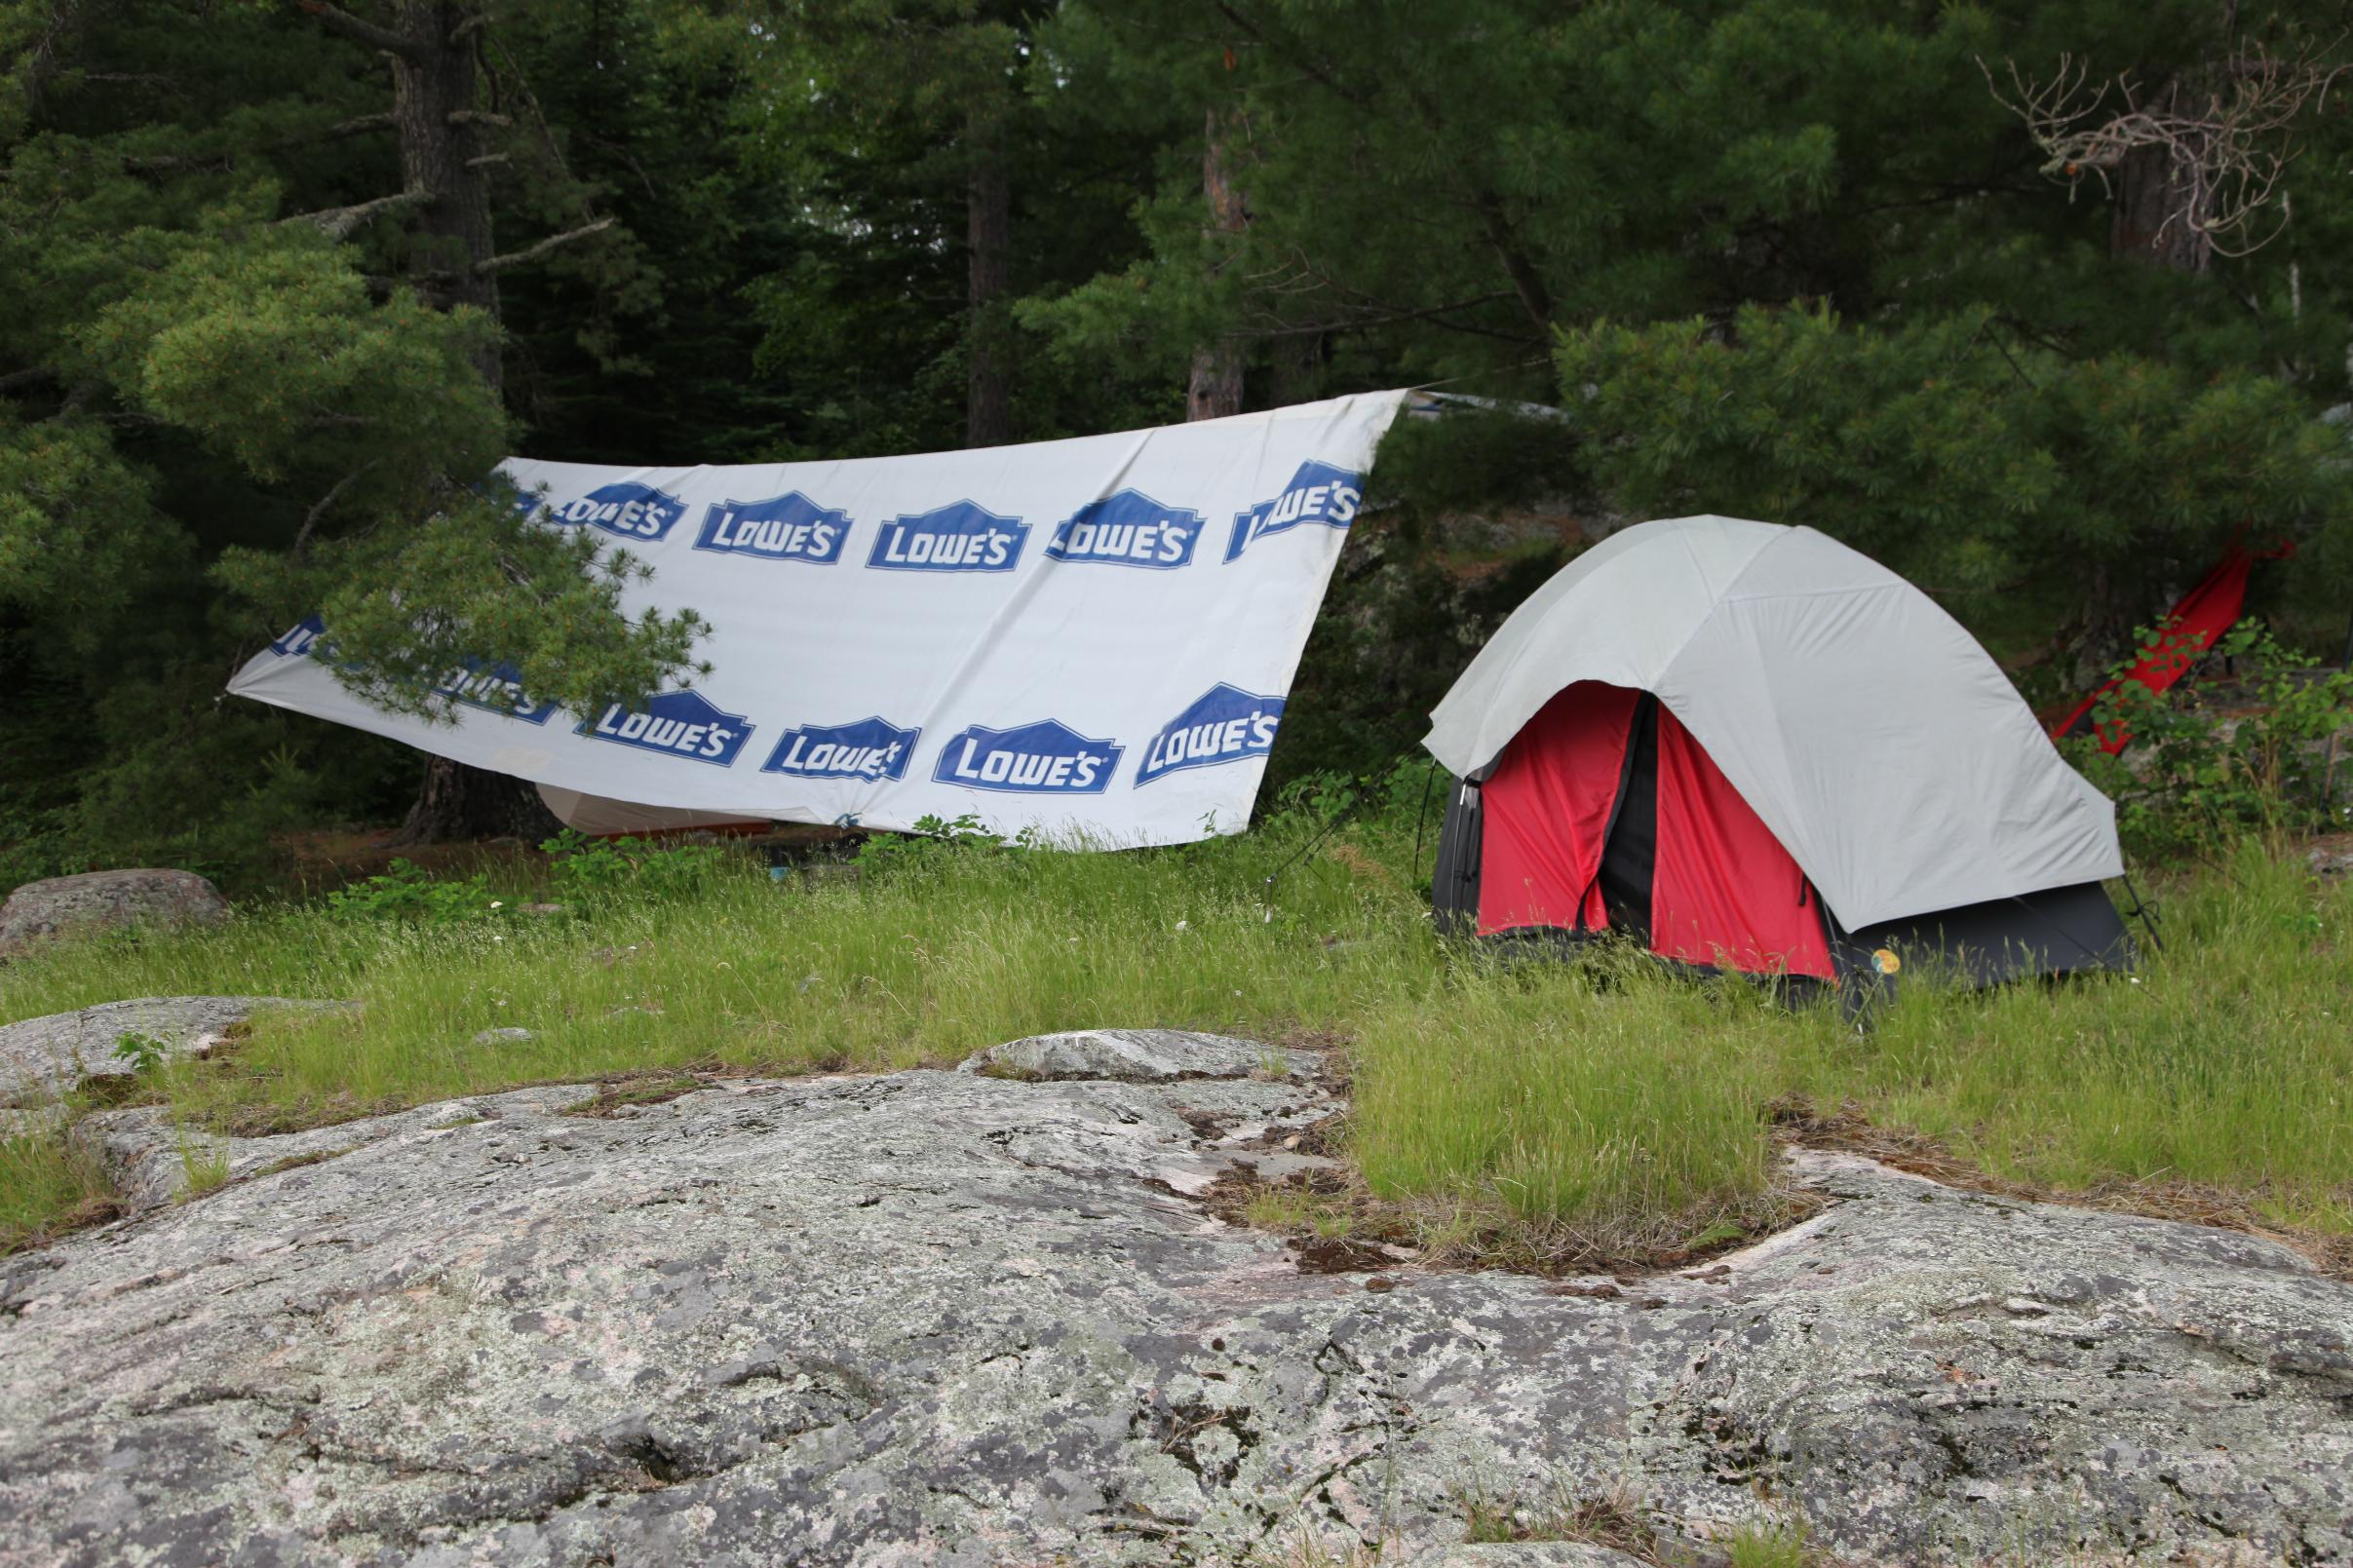 Bwca tyvek boundary waters gear forum for Housse tyvek camping car